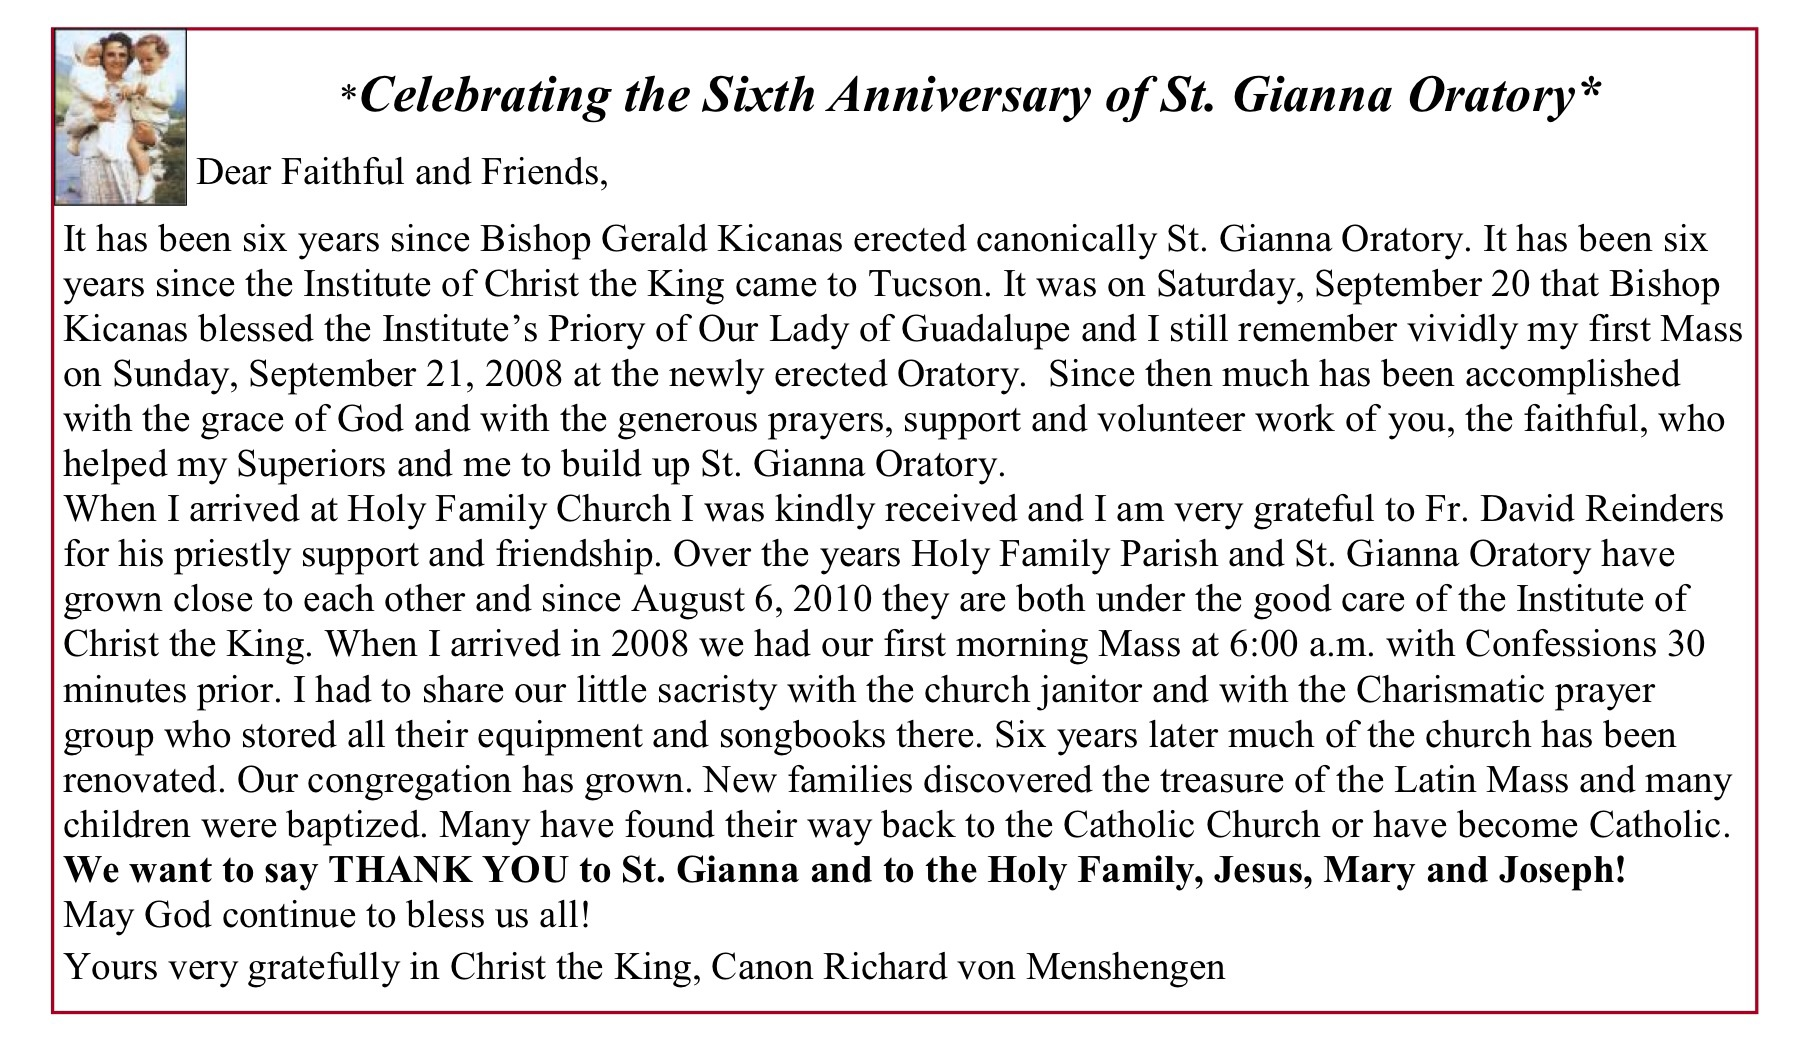 Happy Anniversary to St Gianna Oratory in Tucson!